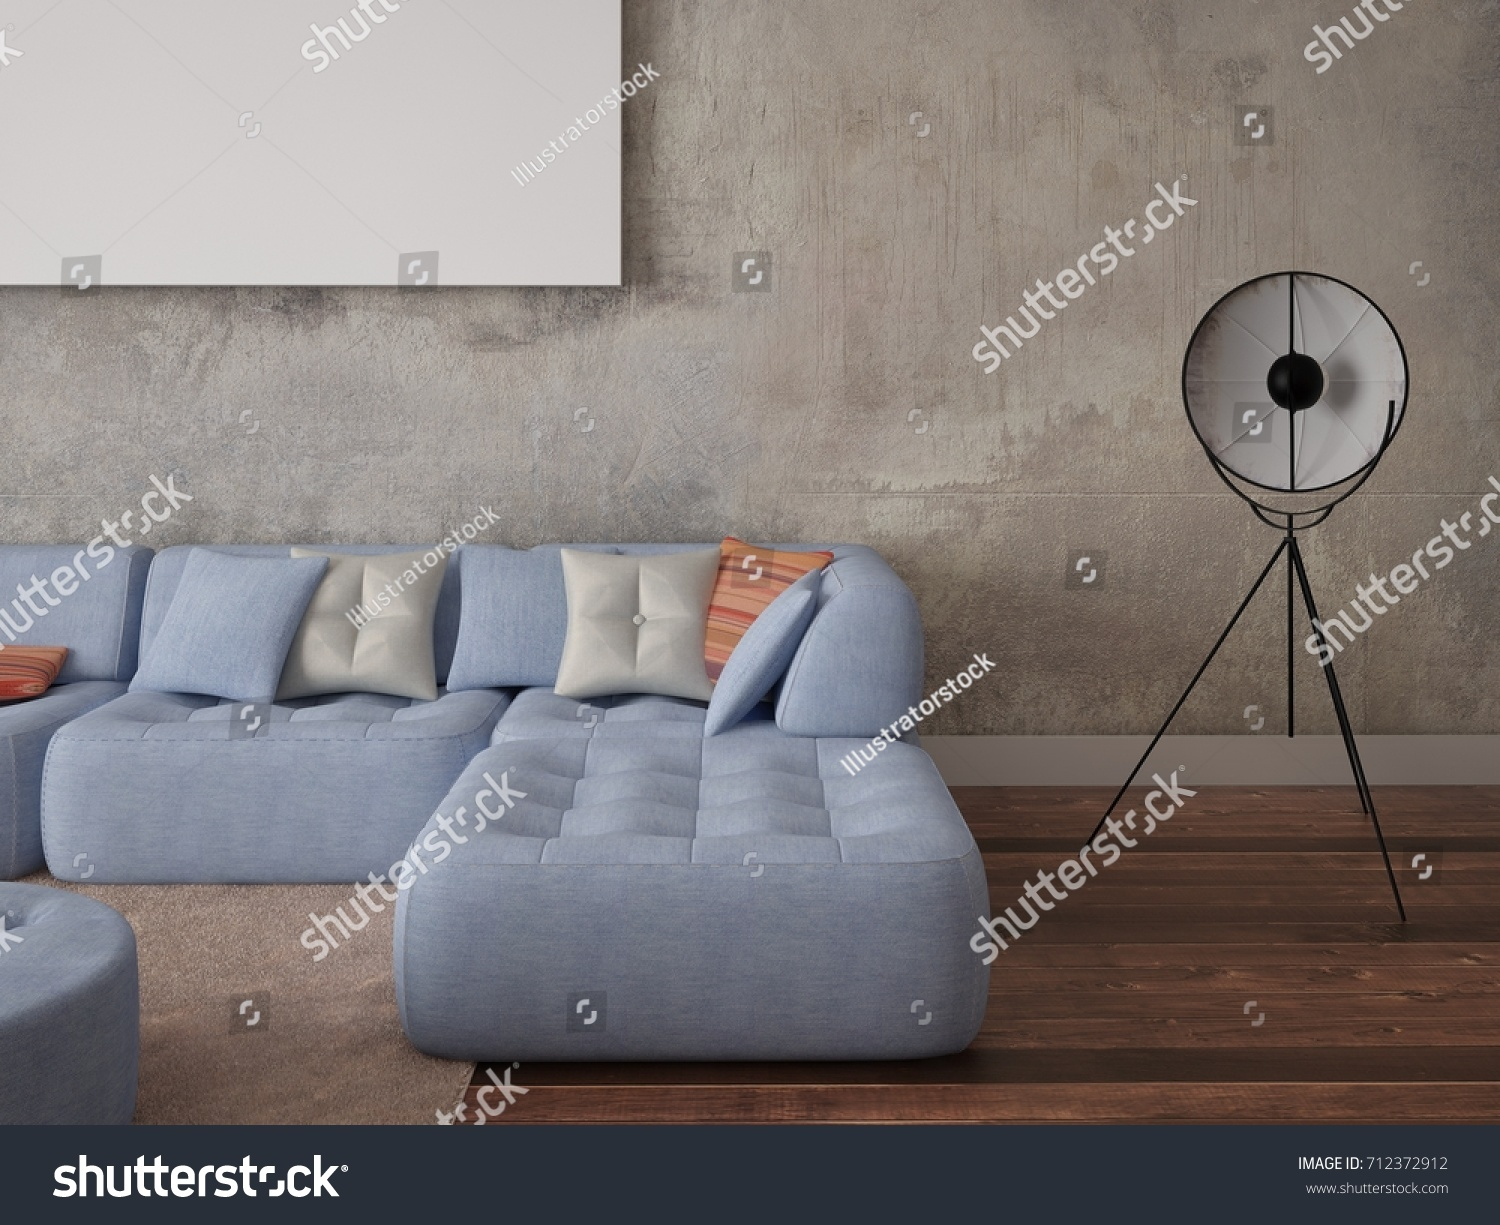 Mock Stylish Living Room Chic Sofa Stock Illustration 712372912  # Meuble Tv Ypster